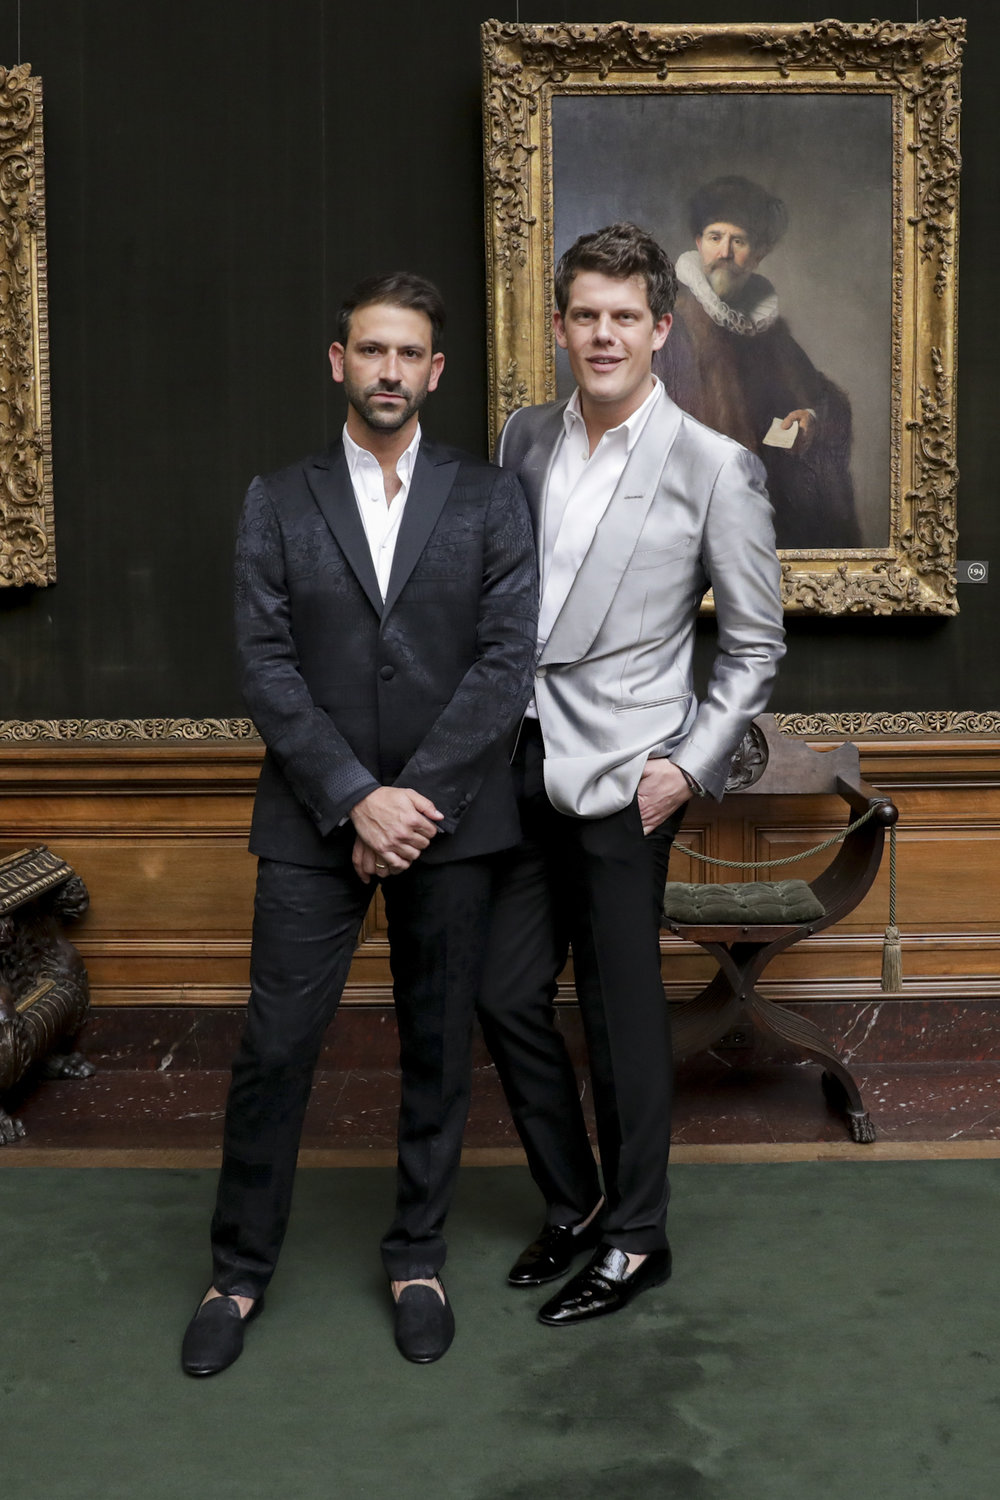 Paul Arnhold and Wes Gordon attend The Frick Collection's 20th Annual Young Fellows Ball at 1 East 70th Street on Thursday, March 21st, 2019. Photography, Courtesy of The Frick Collection.